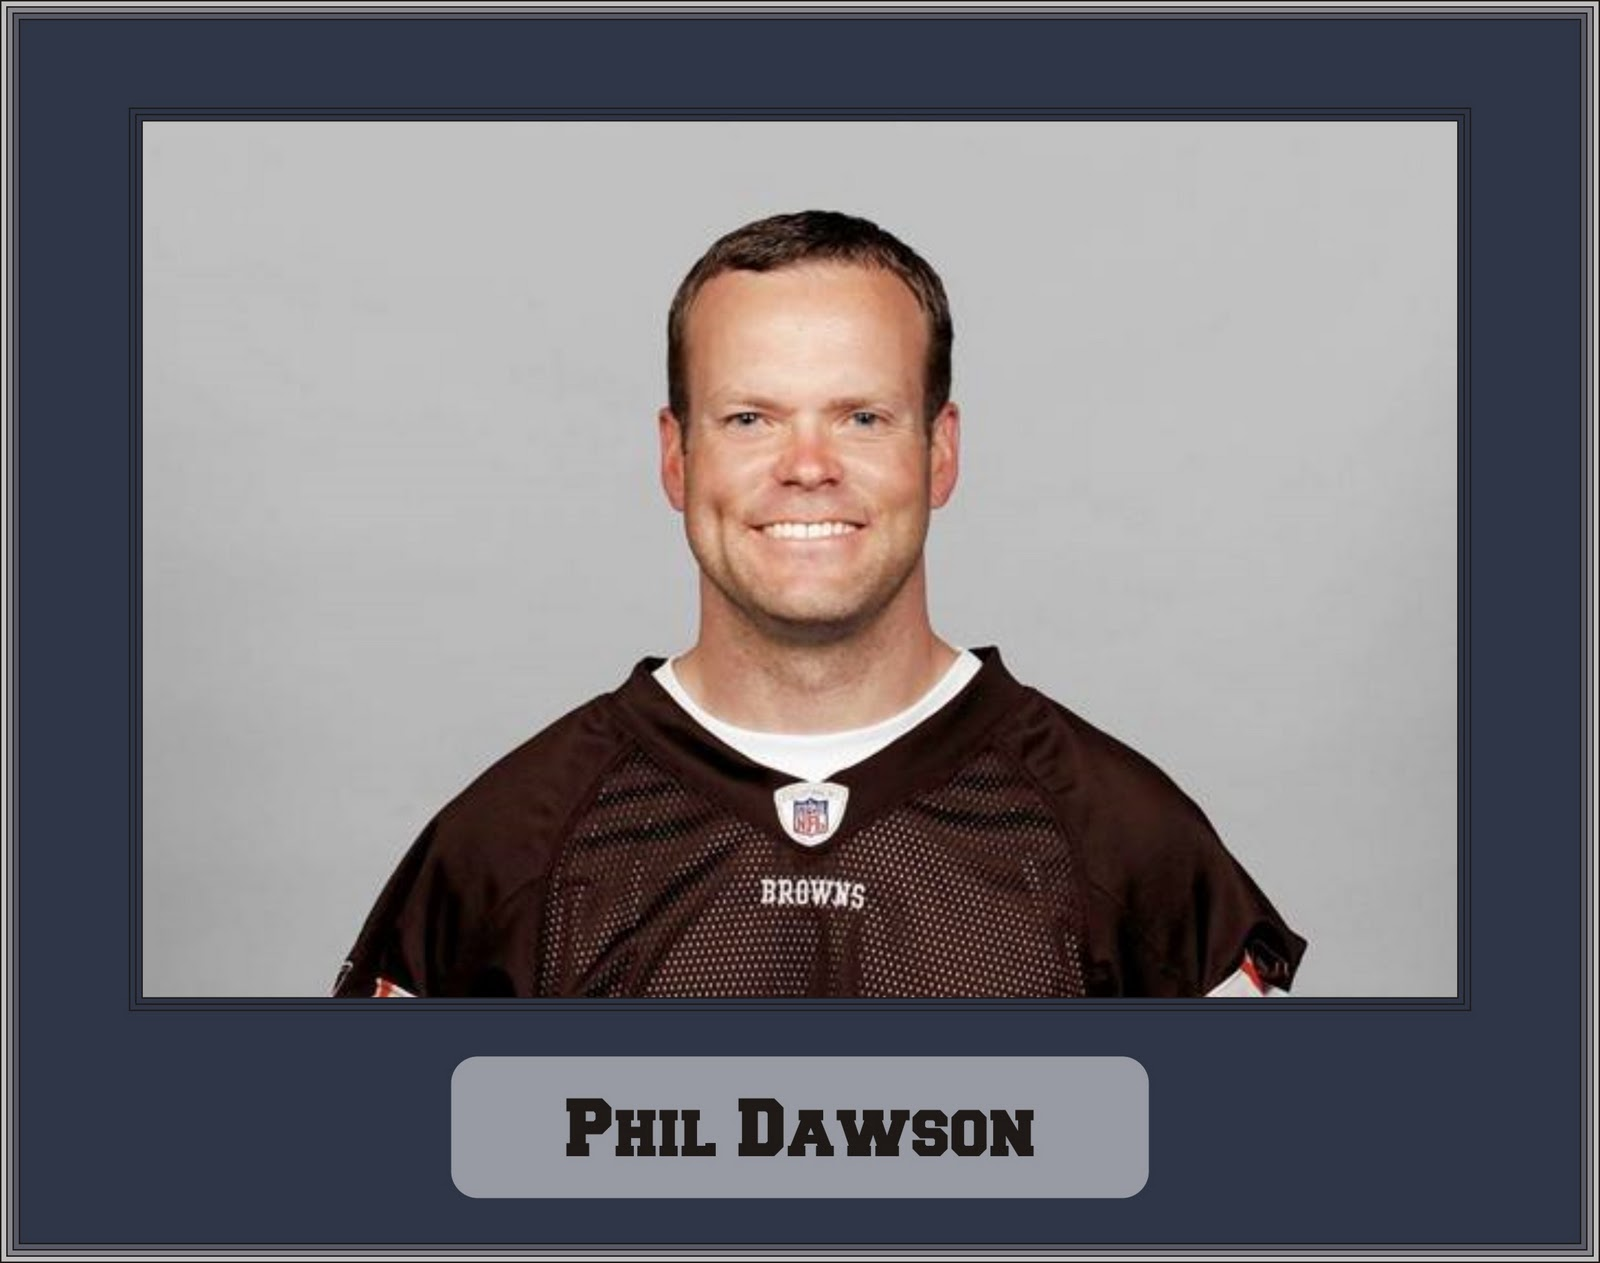 24b515c43 West Valley Browns Backers  Browns franchise kicker Phil Dawson